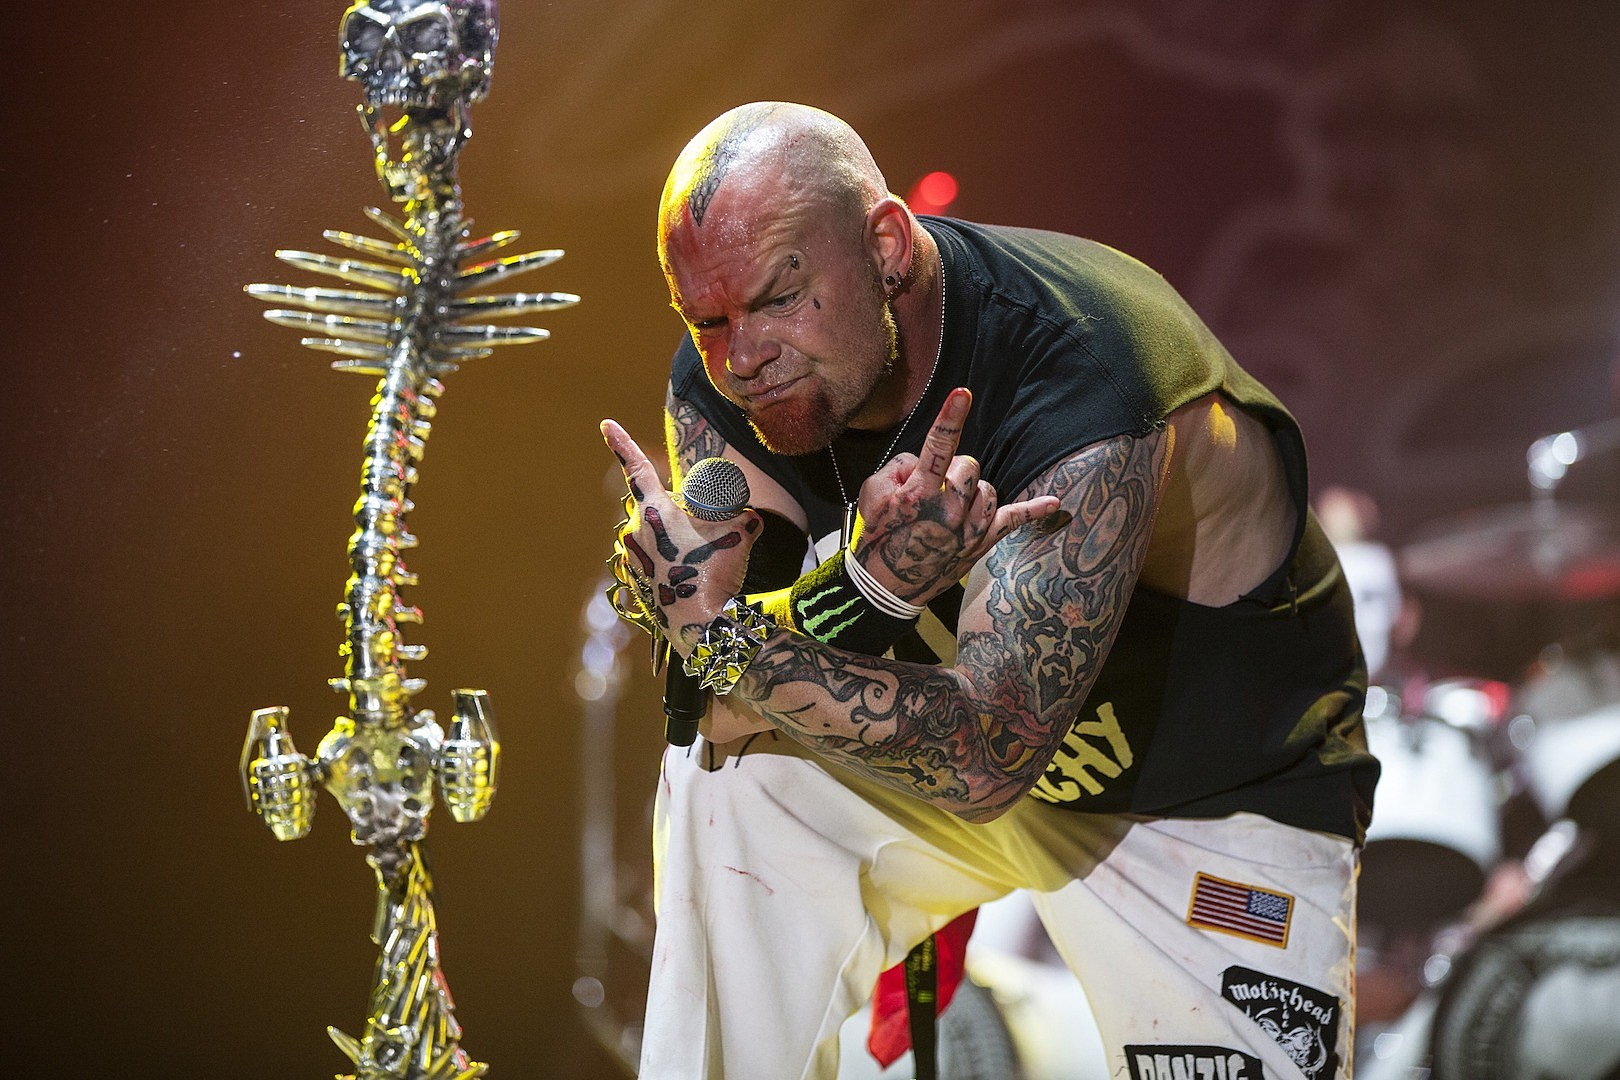 Ivan Moody Hoping For New Five Finger Death Punch Album in Early 2020